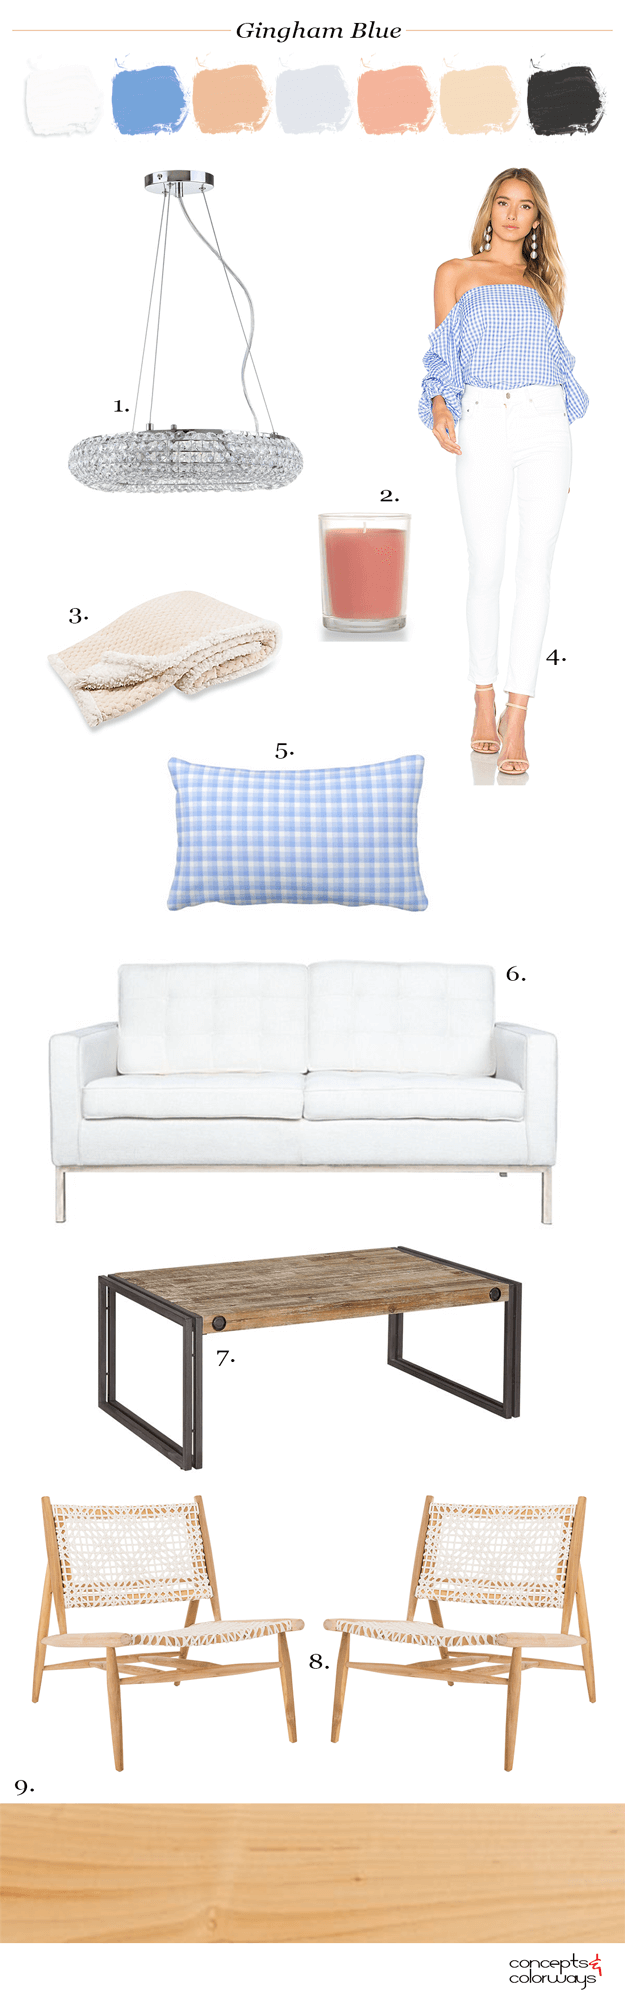 blue and white living room, blue and white decor, blue gingham pillow, blue gingham off the shoulder top with white jeans, gingham blue, blue gingham,